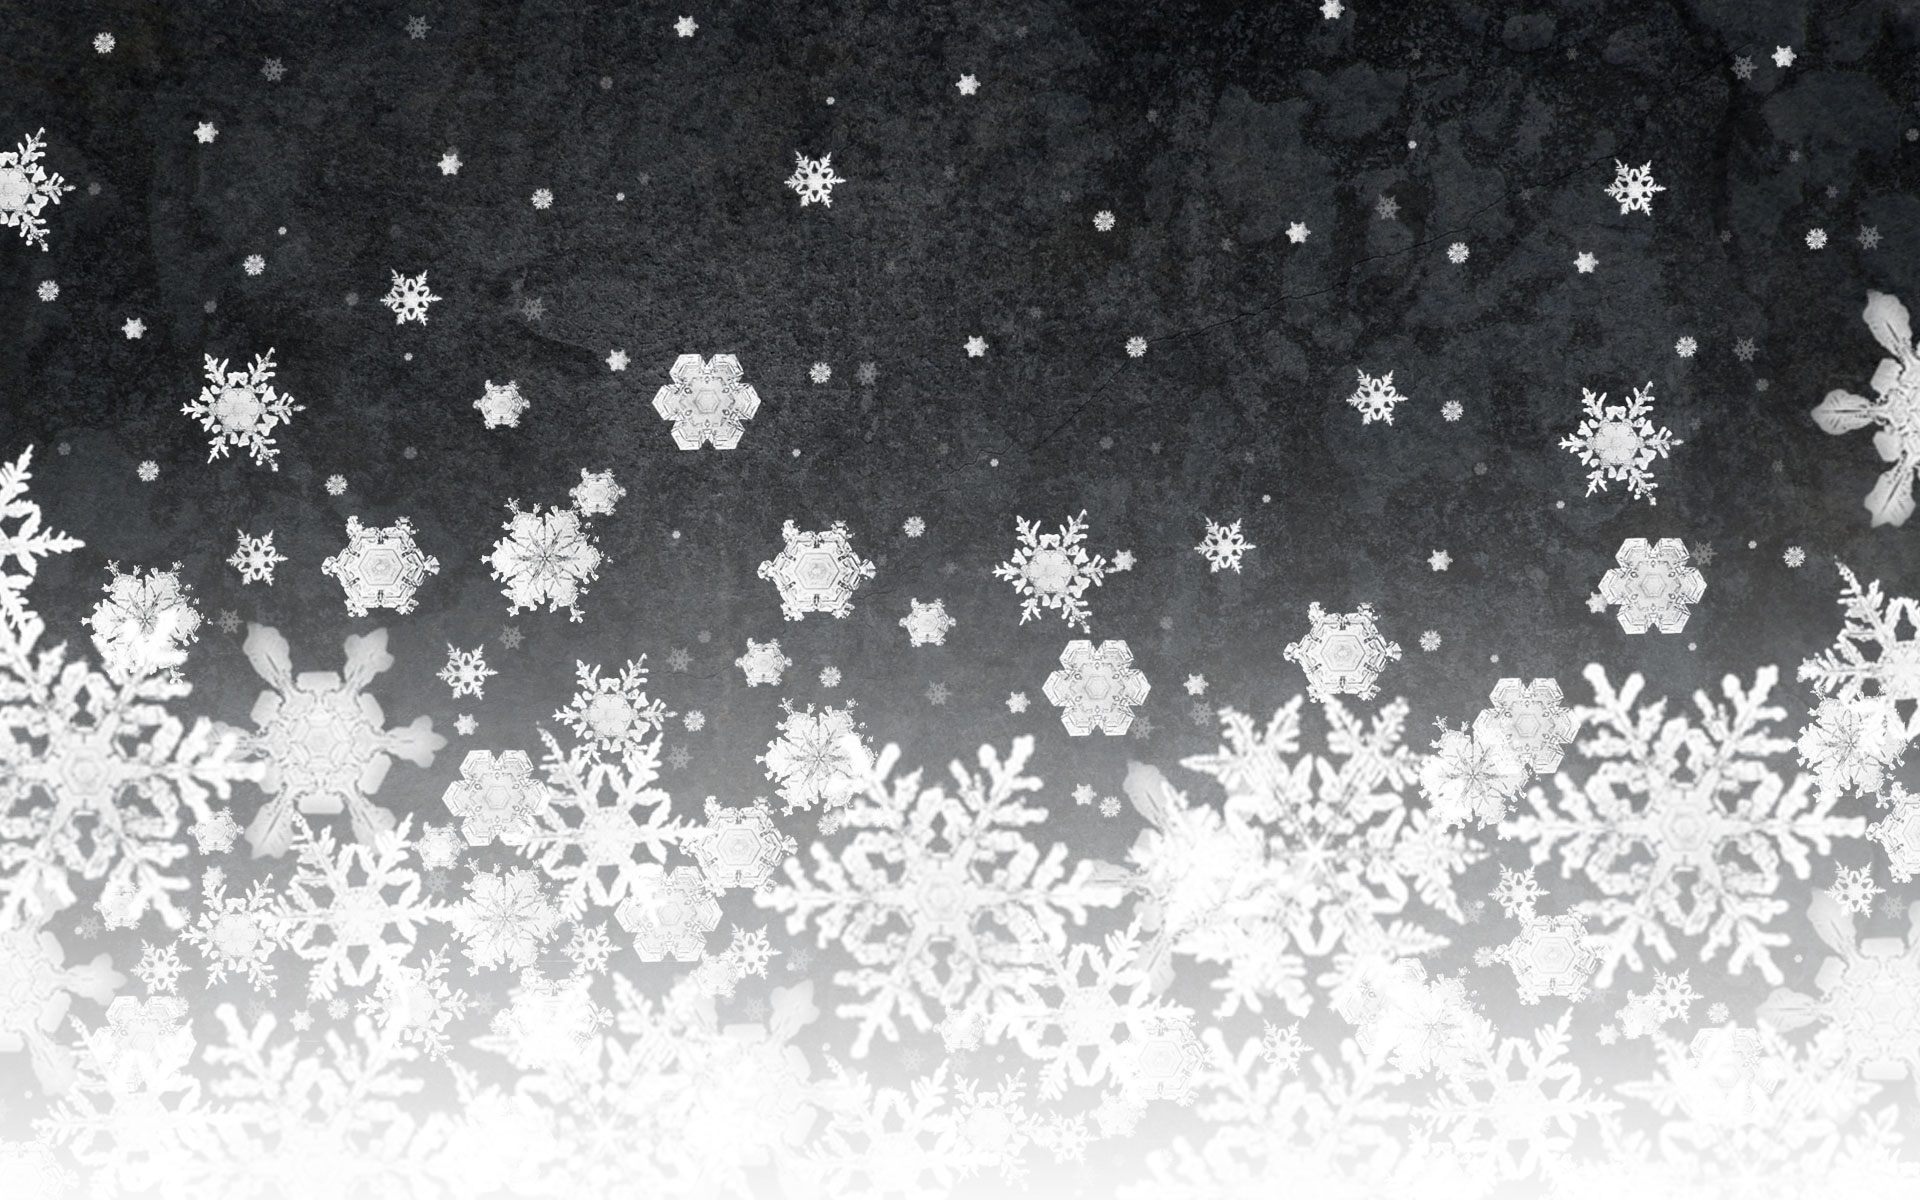 Black And White Snow Snow Wallpaper Black And White 1292210